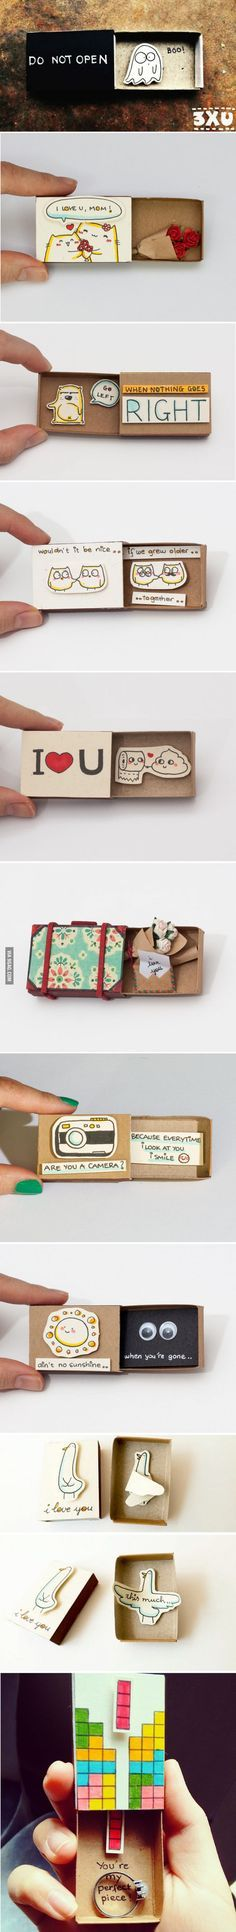 Artist creates little matchbox greeting cards with hidden messages inside (part I) - 9GAG